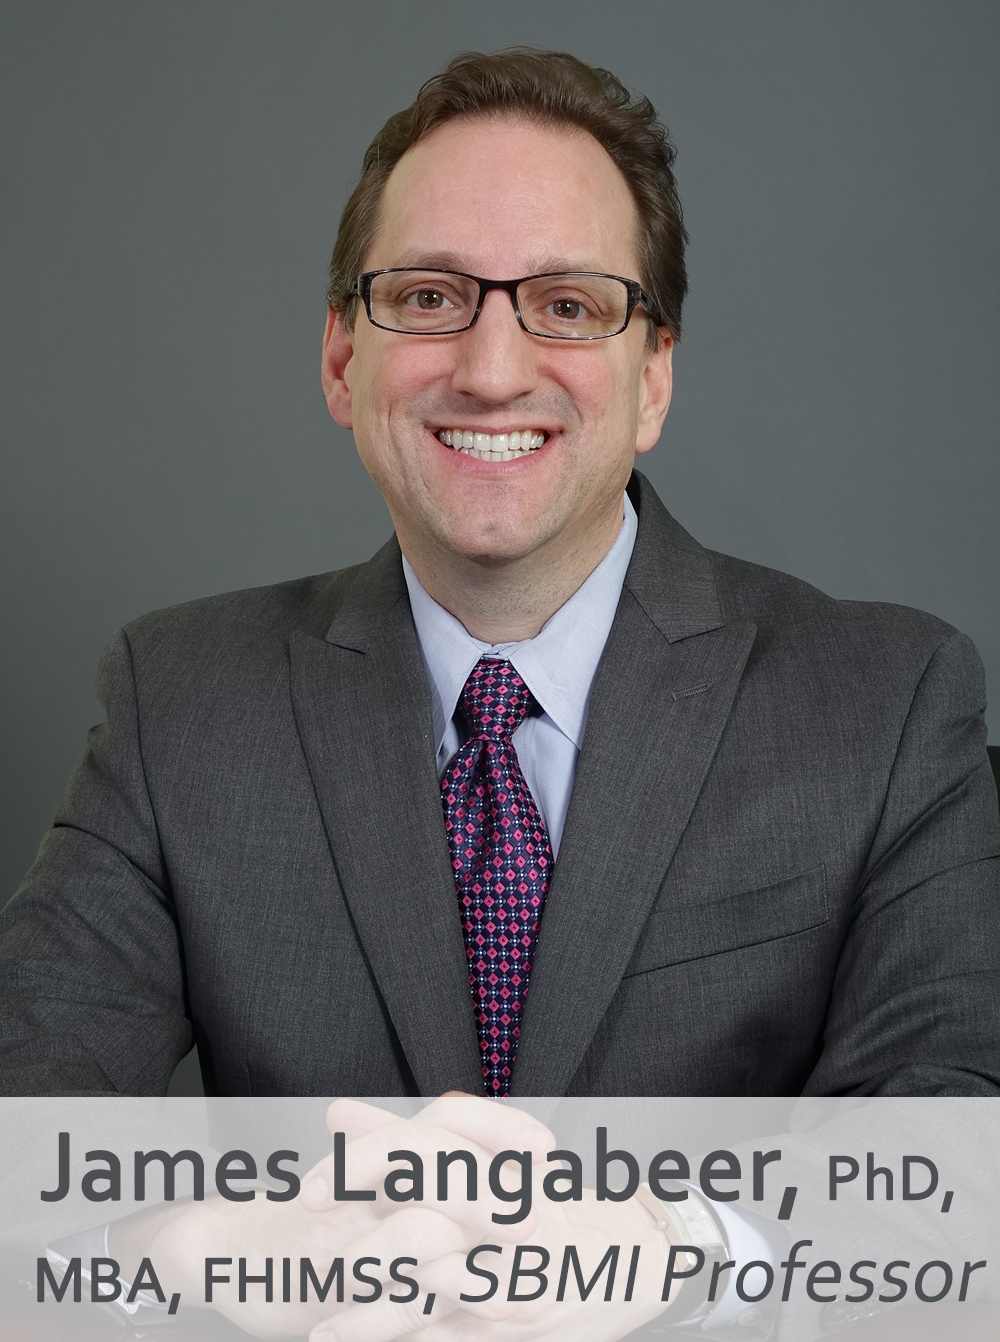 James Langabeer, PhD, MBA, FHIMSS